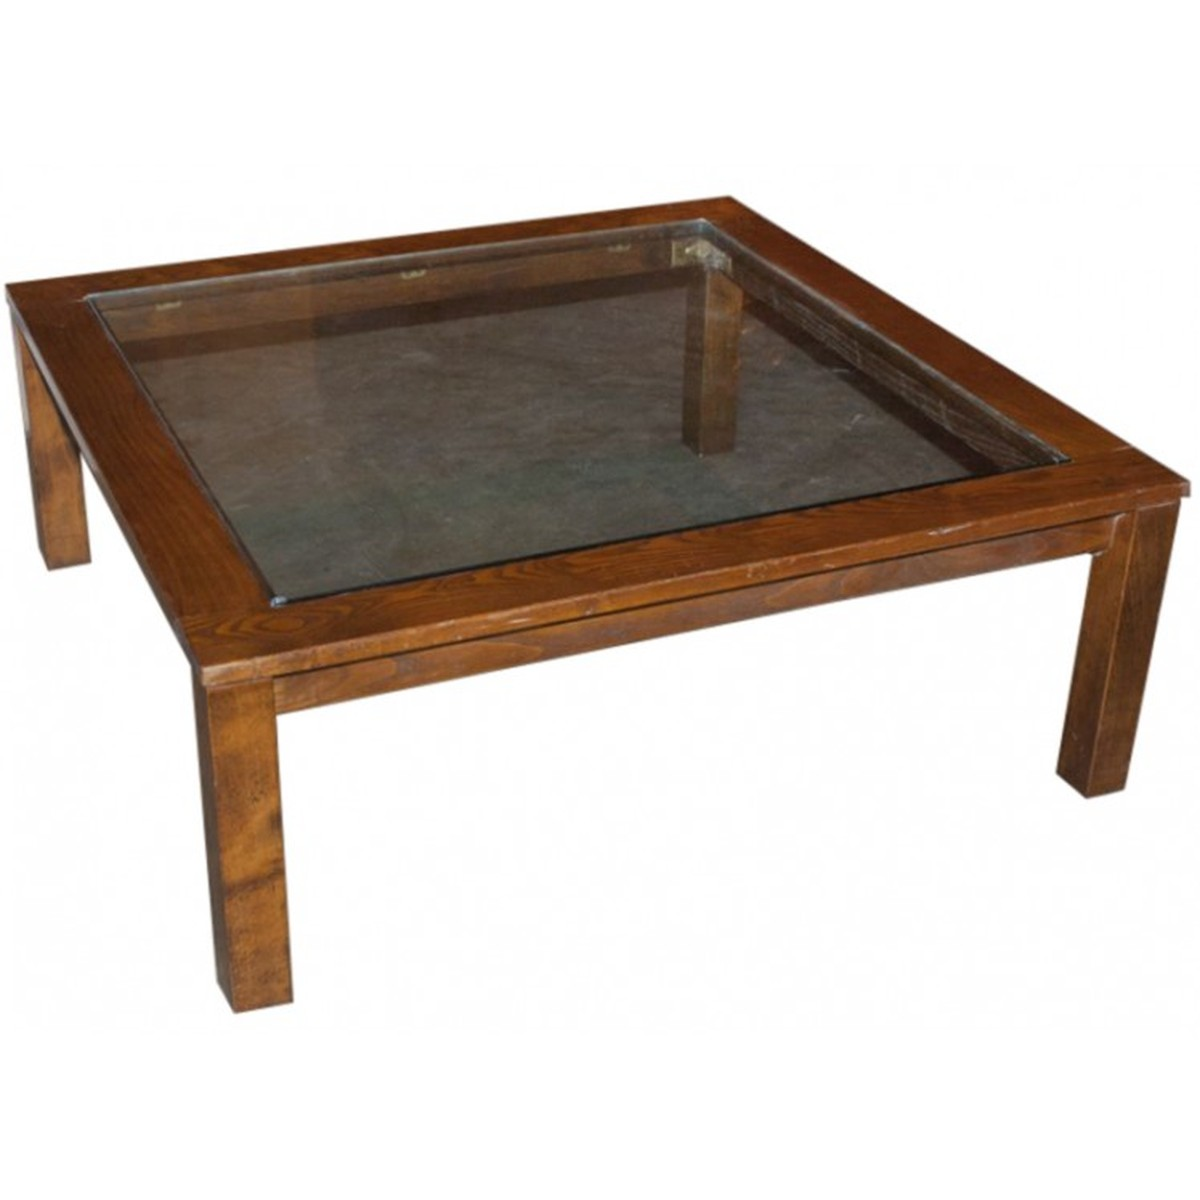 Secondhand Chairs And Tables Lounge Furniture Large Square Glass Top Coffee Table